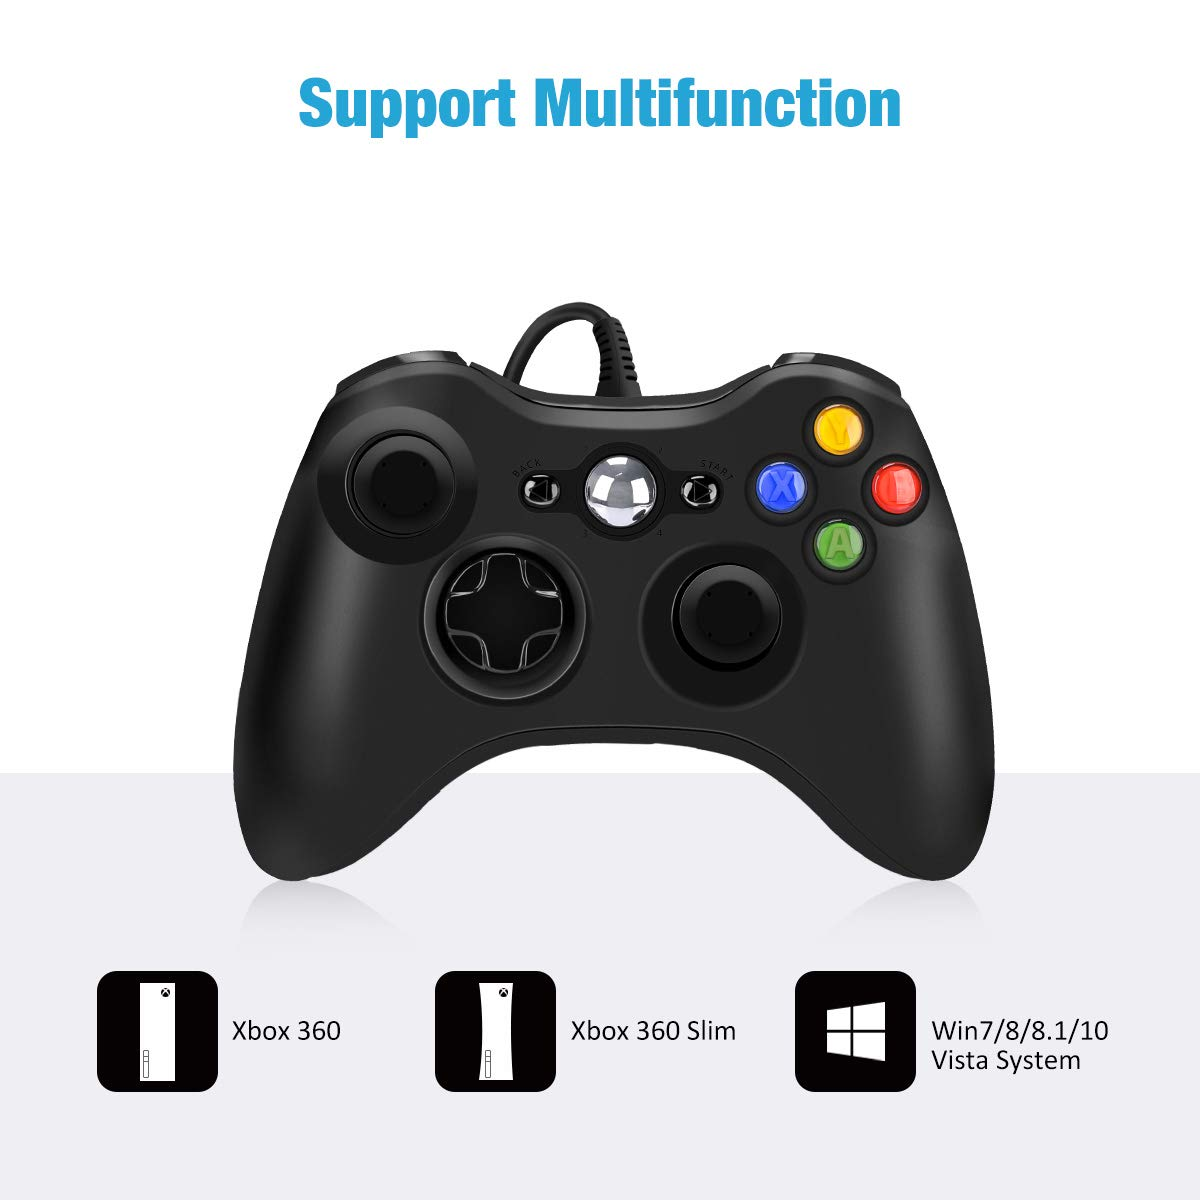 Xbox 360 Wired Controller for Microsoft Xbox 360, Game Controller with Dual-Vibration Turbo for Xbox 360/360 Slim and PC Windows 7,8,10 - Black